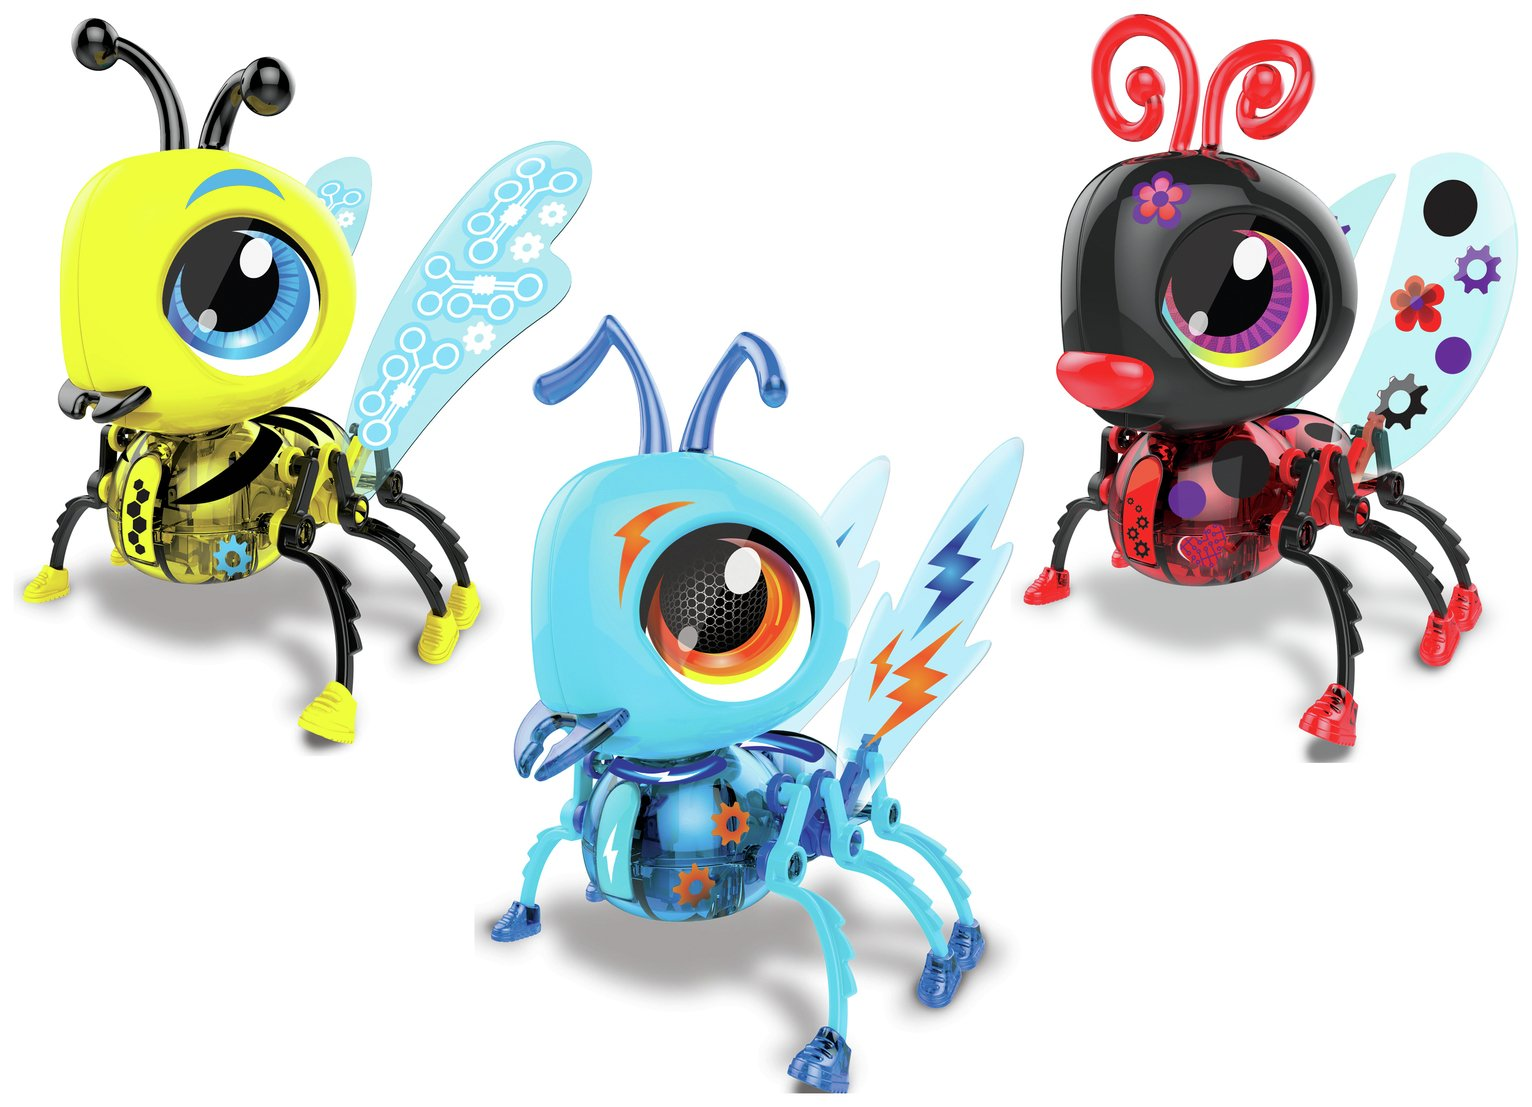 Image of Build-a-Bot Robot Bugs Assortment